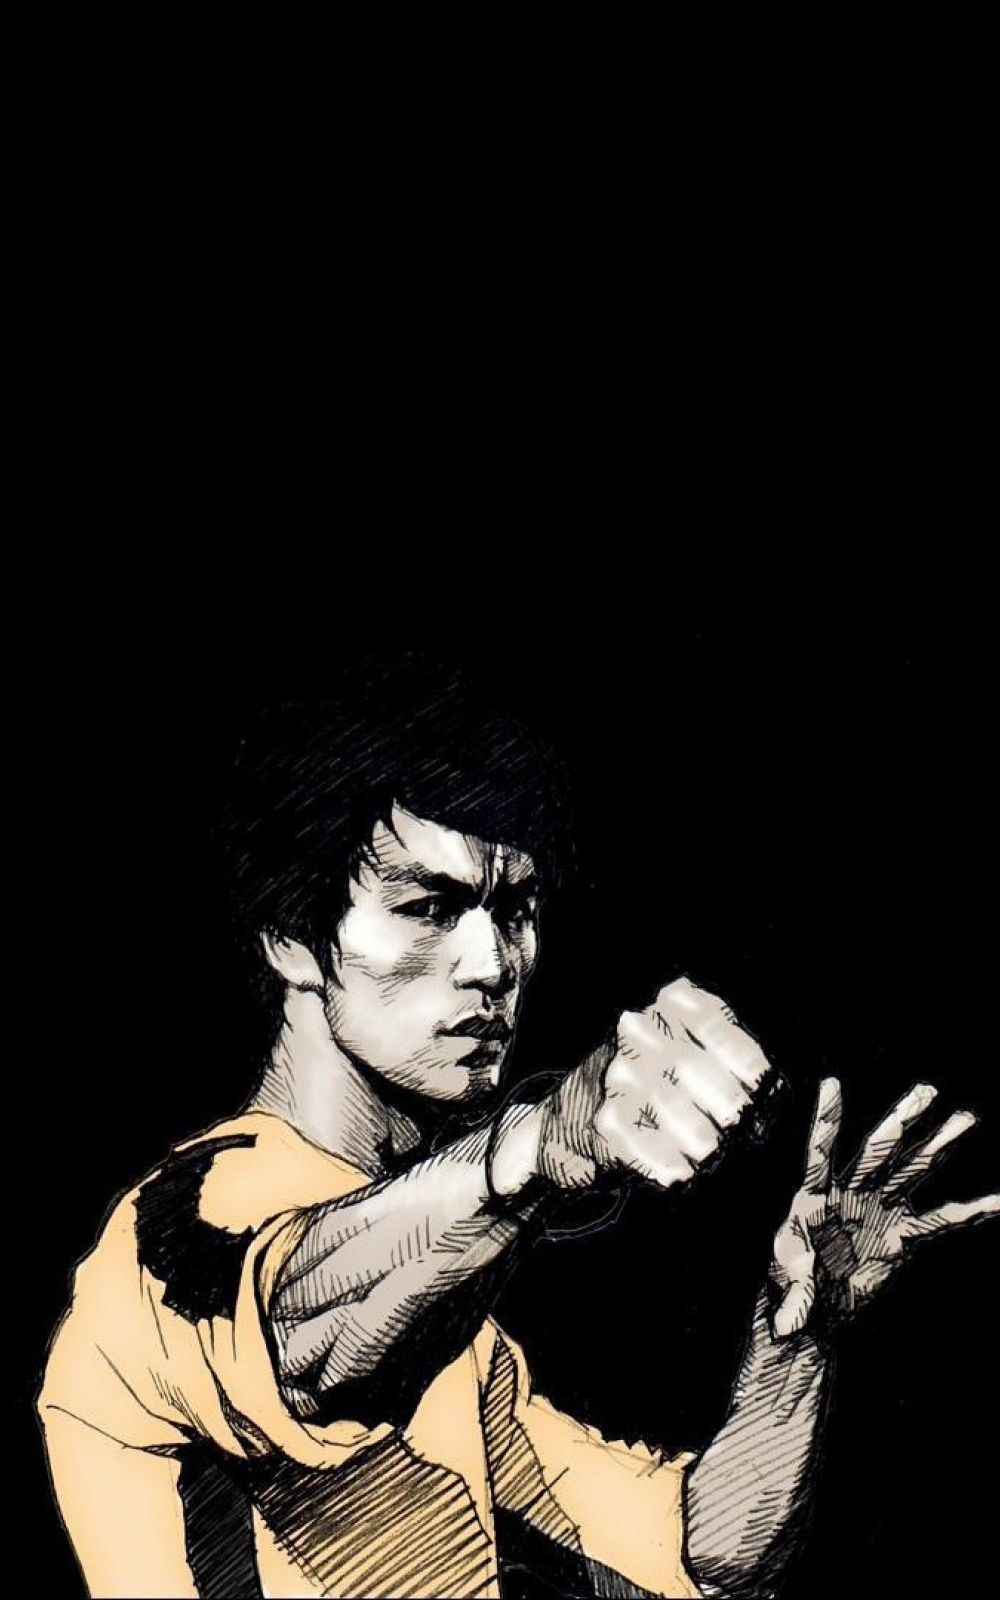 download bruce lee punch iphone 6 plus hd wallpaper | wallpaper